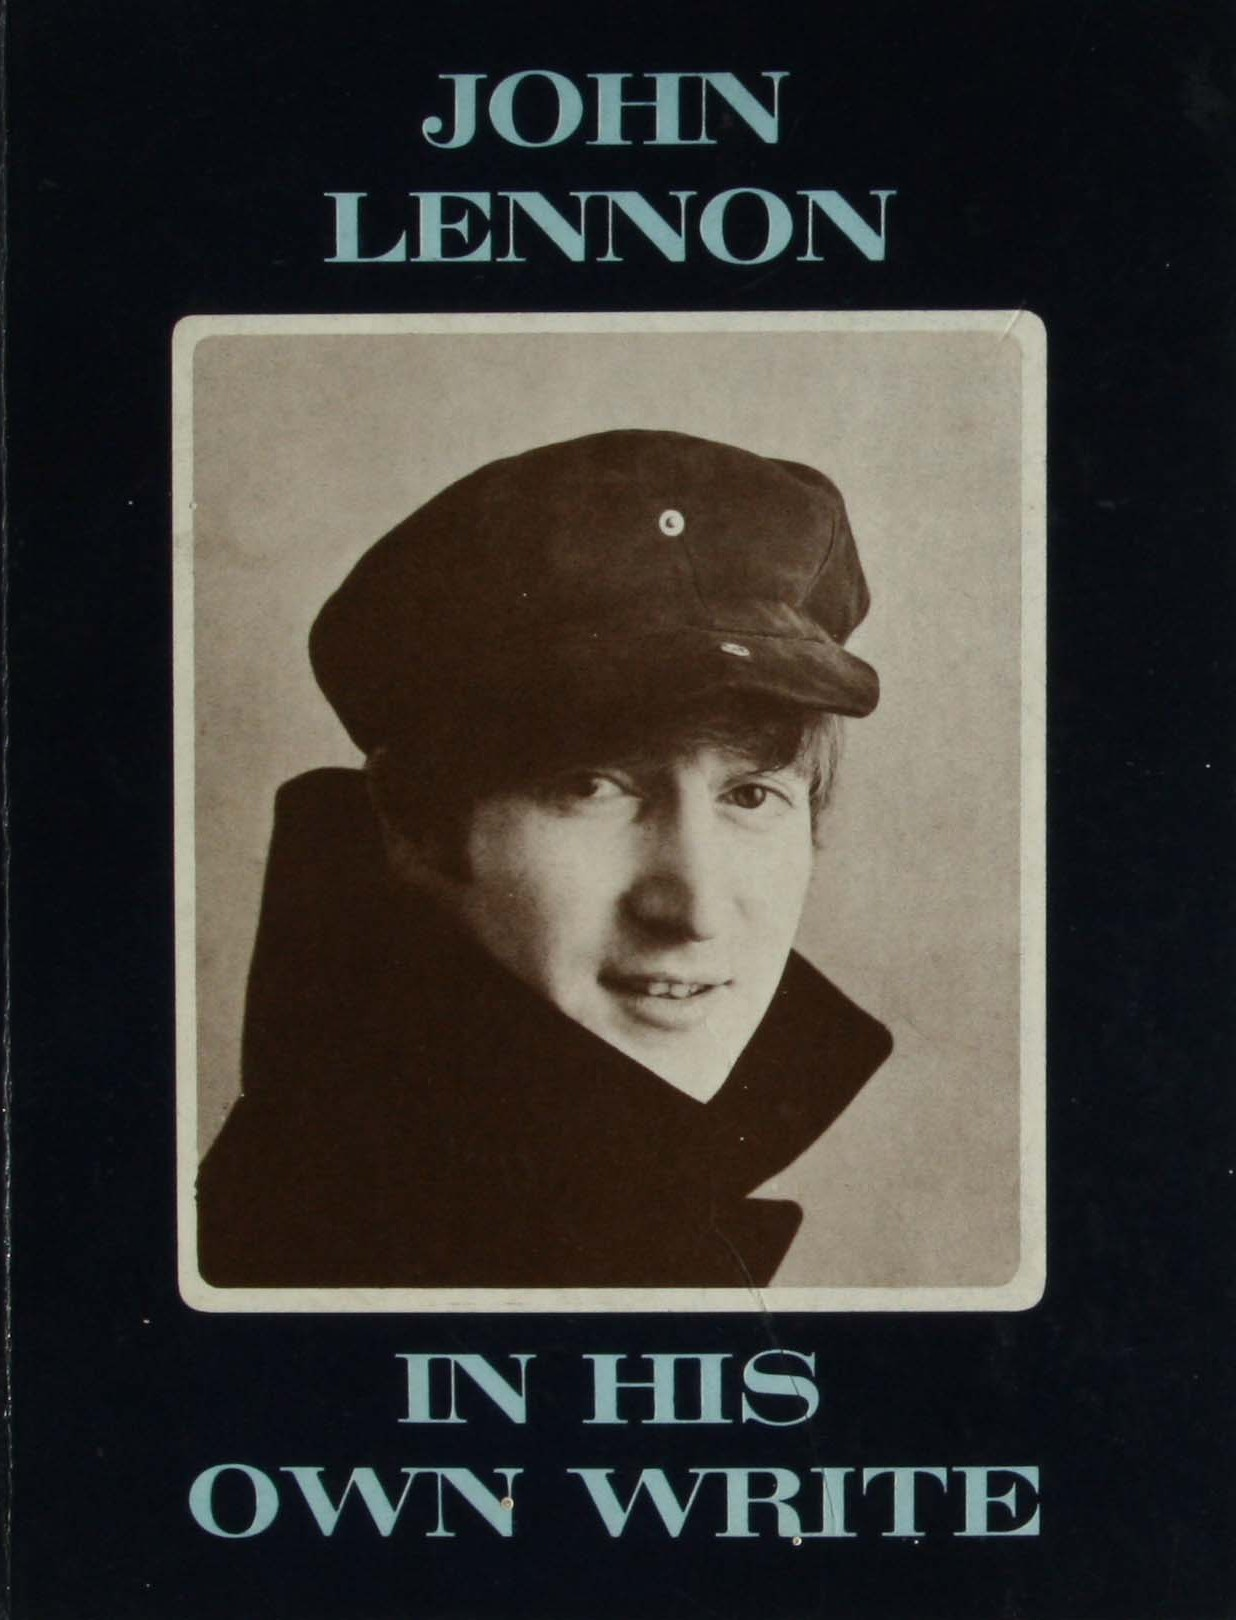 John Lennon In his own write first edition